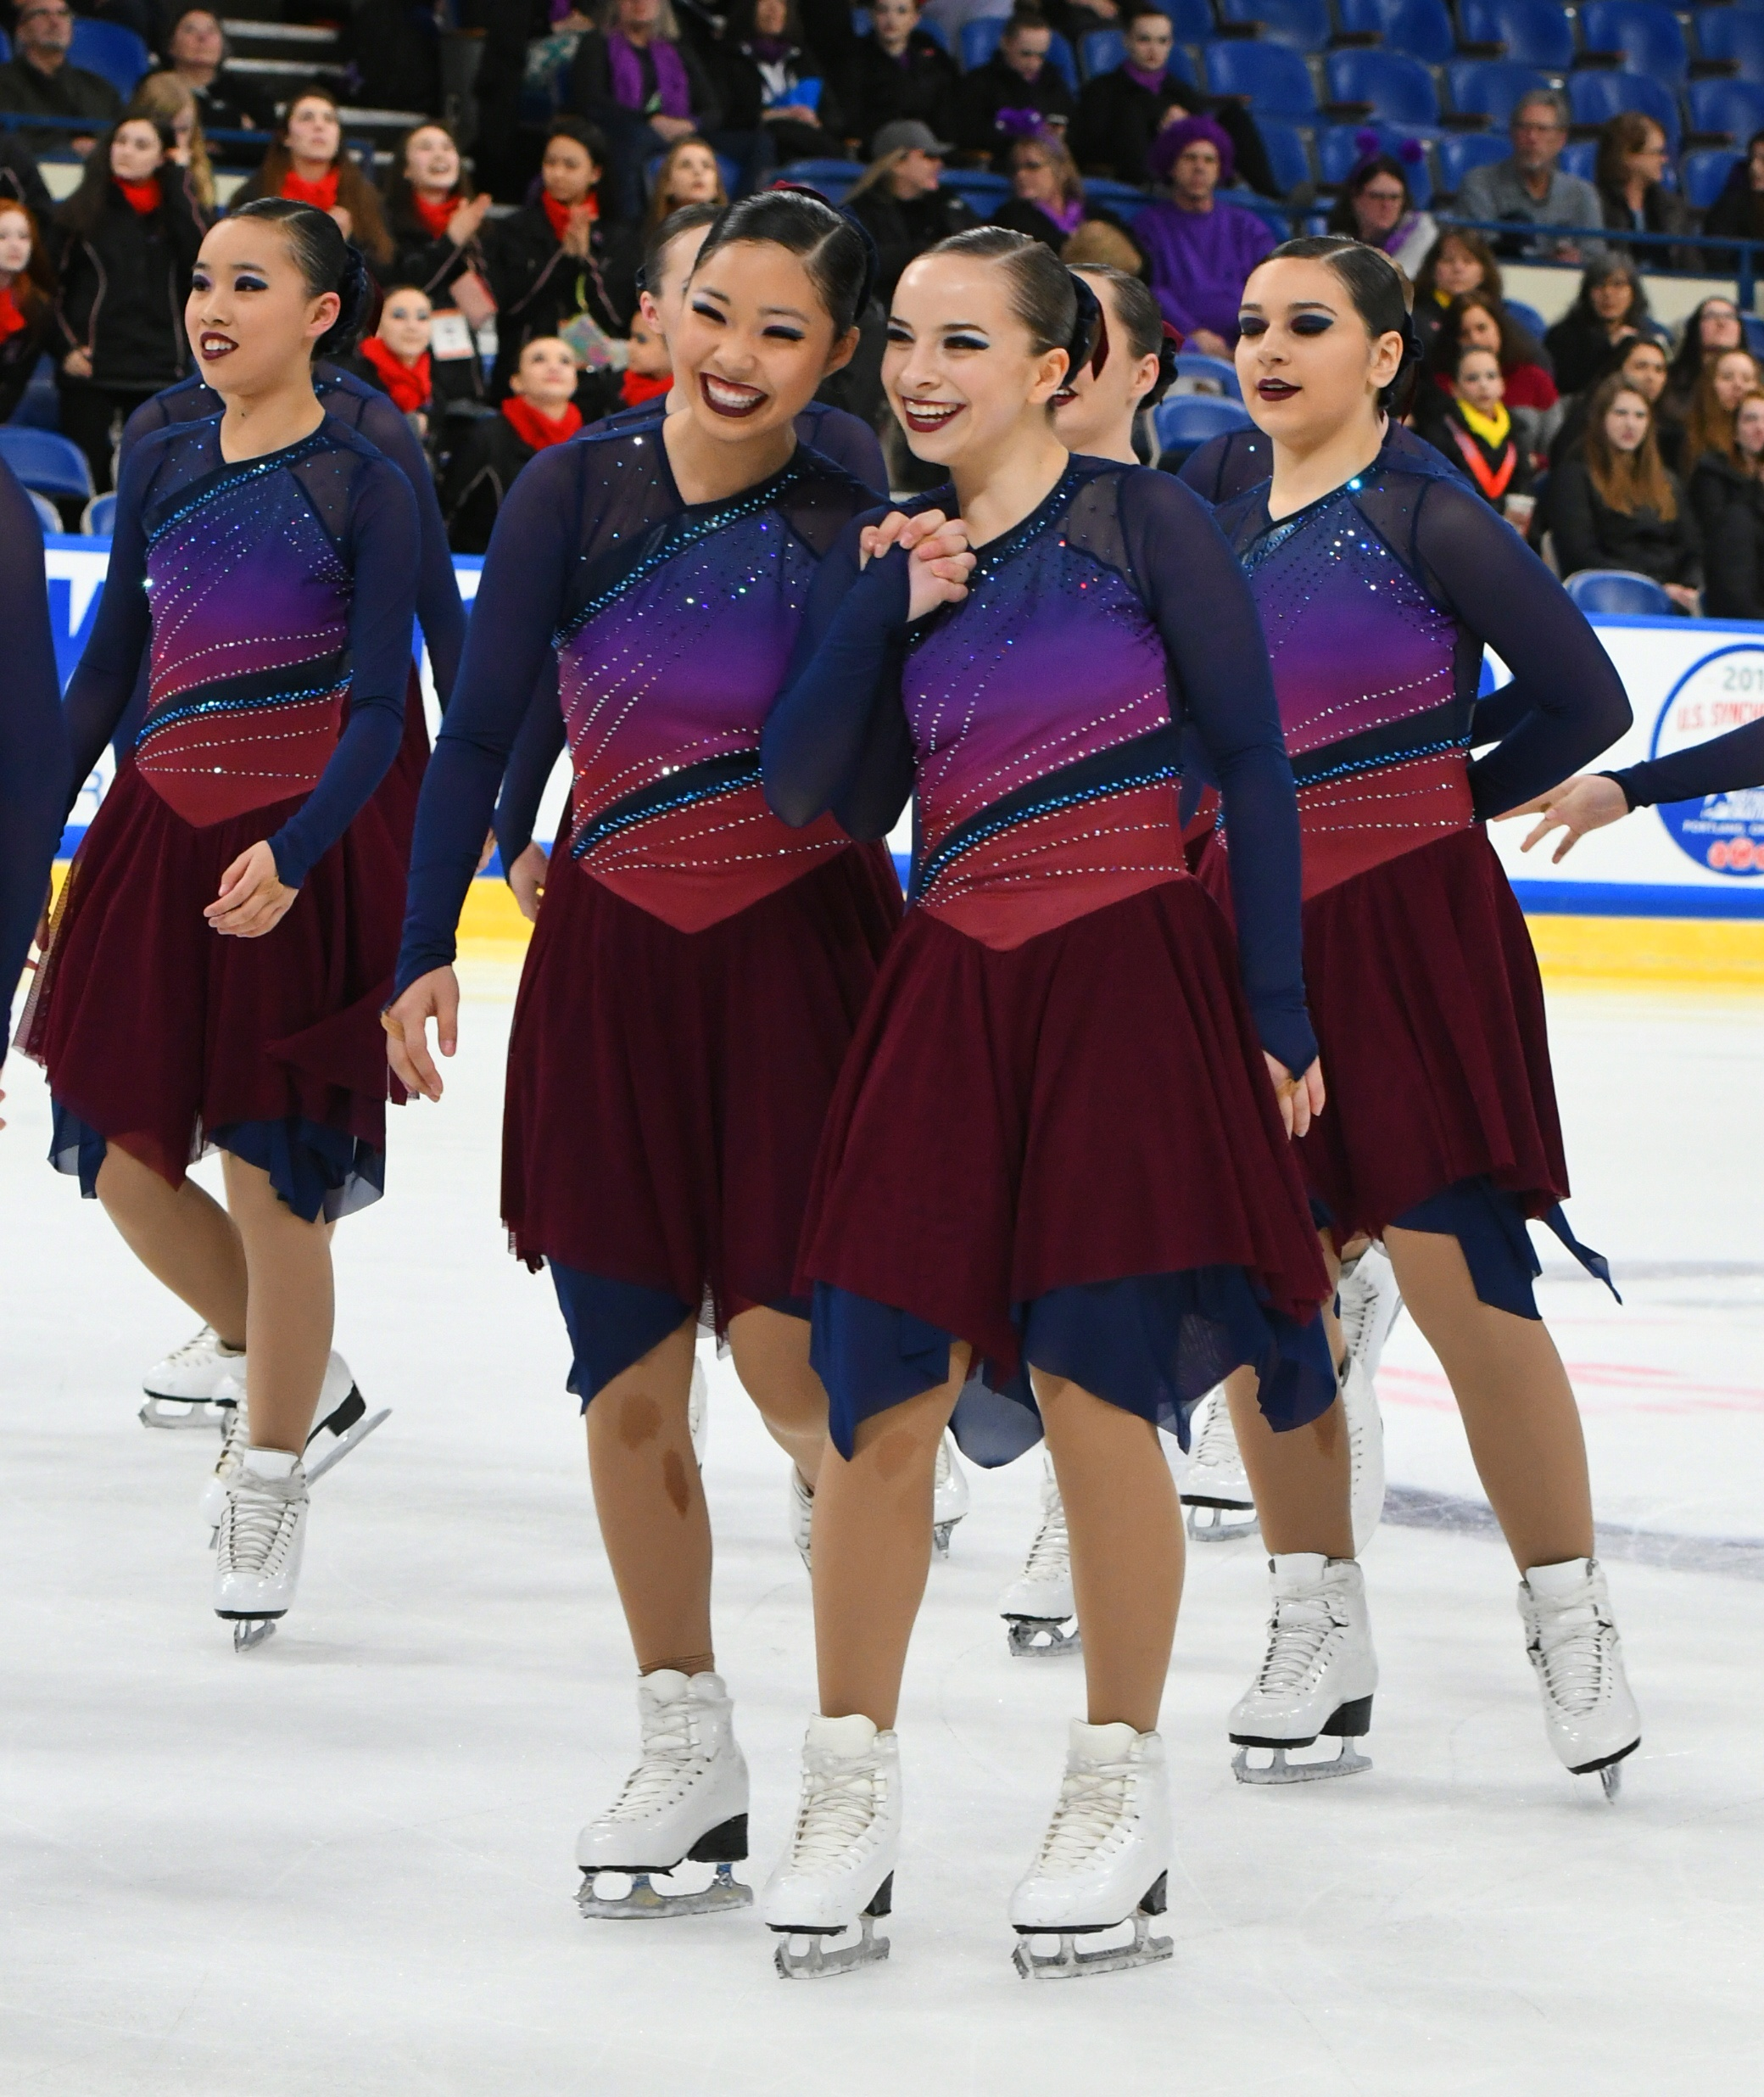 DC Edge Junior Synchronized Skating Teams Custom Skate Dresses